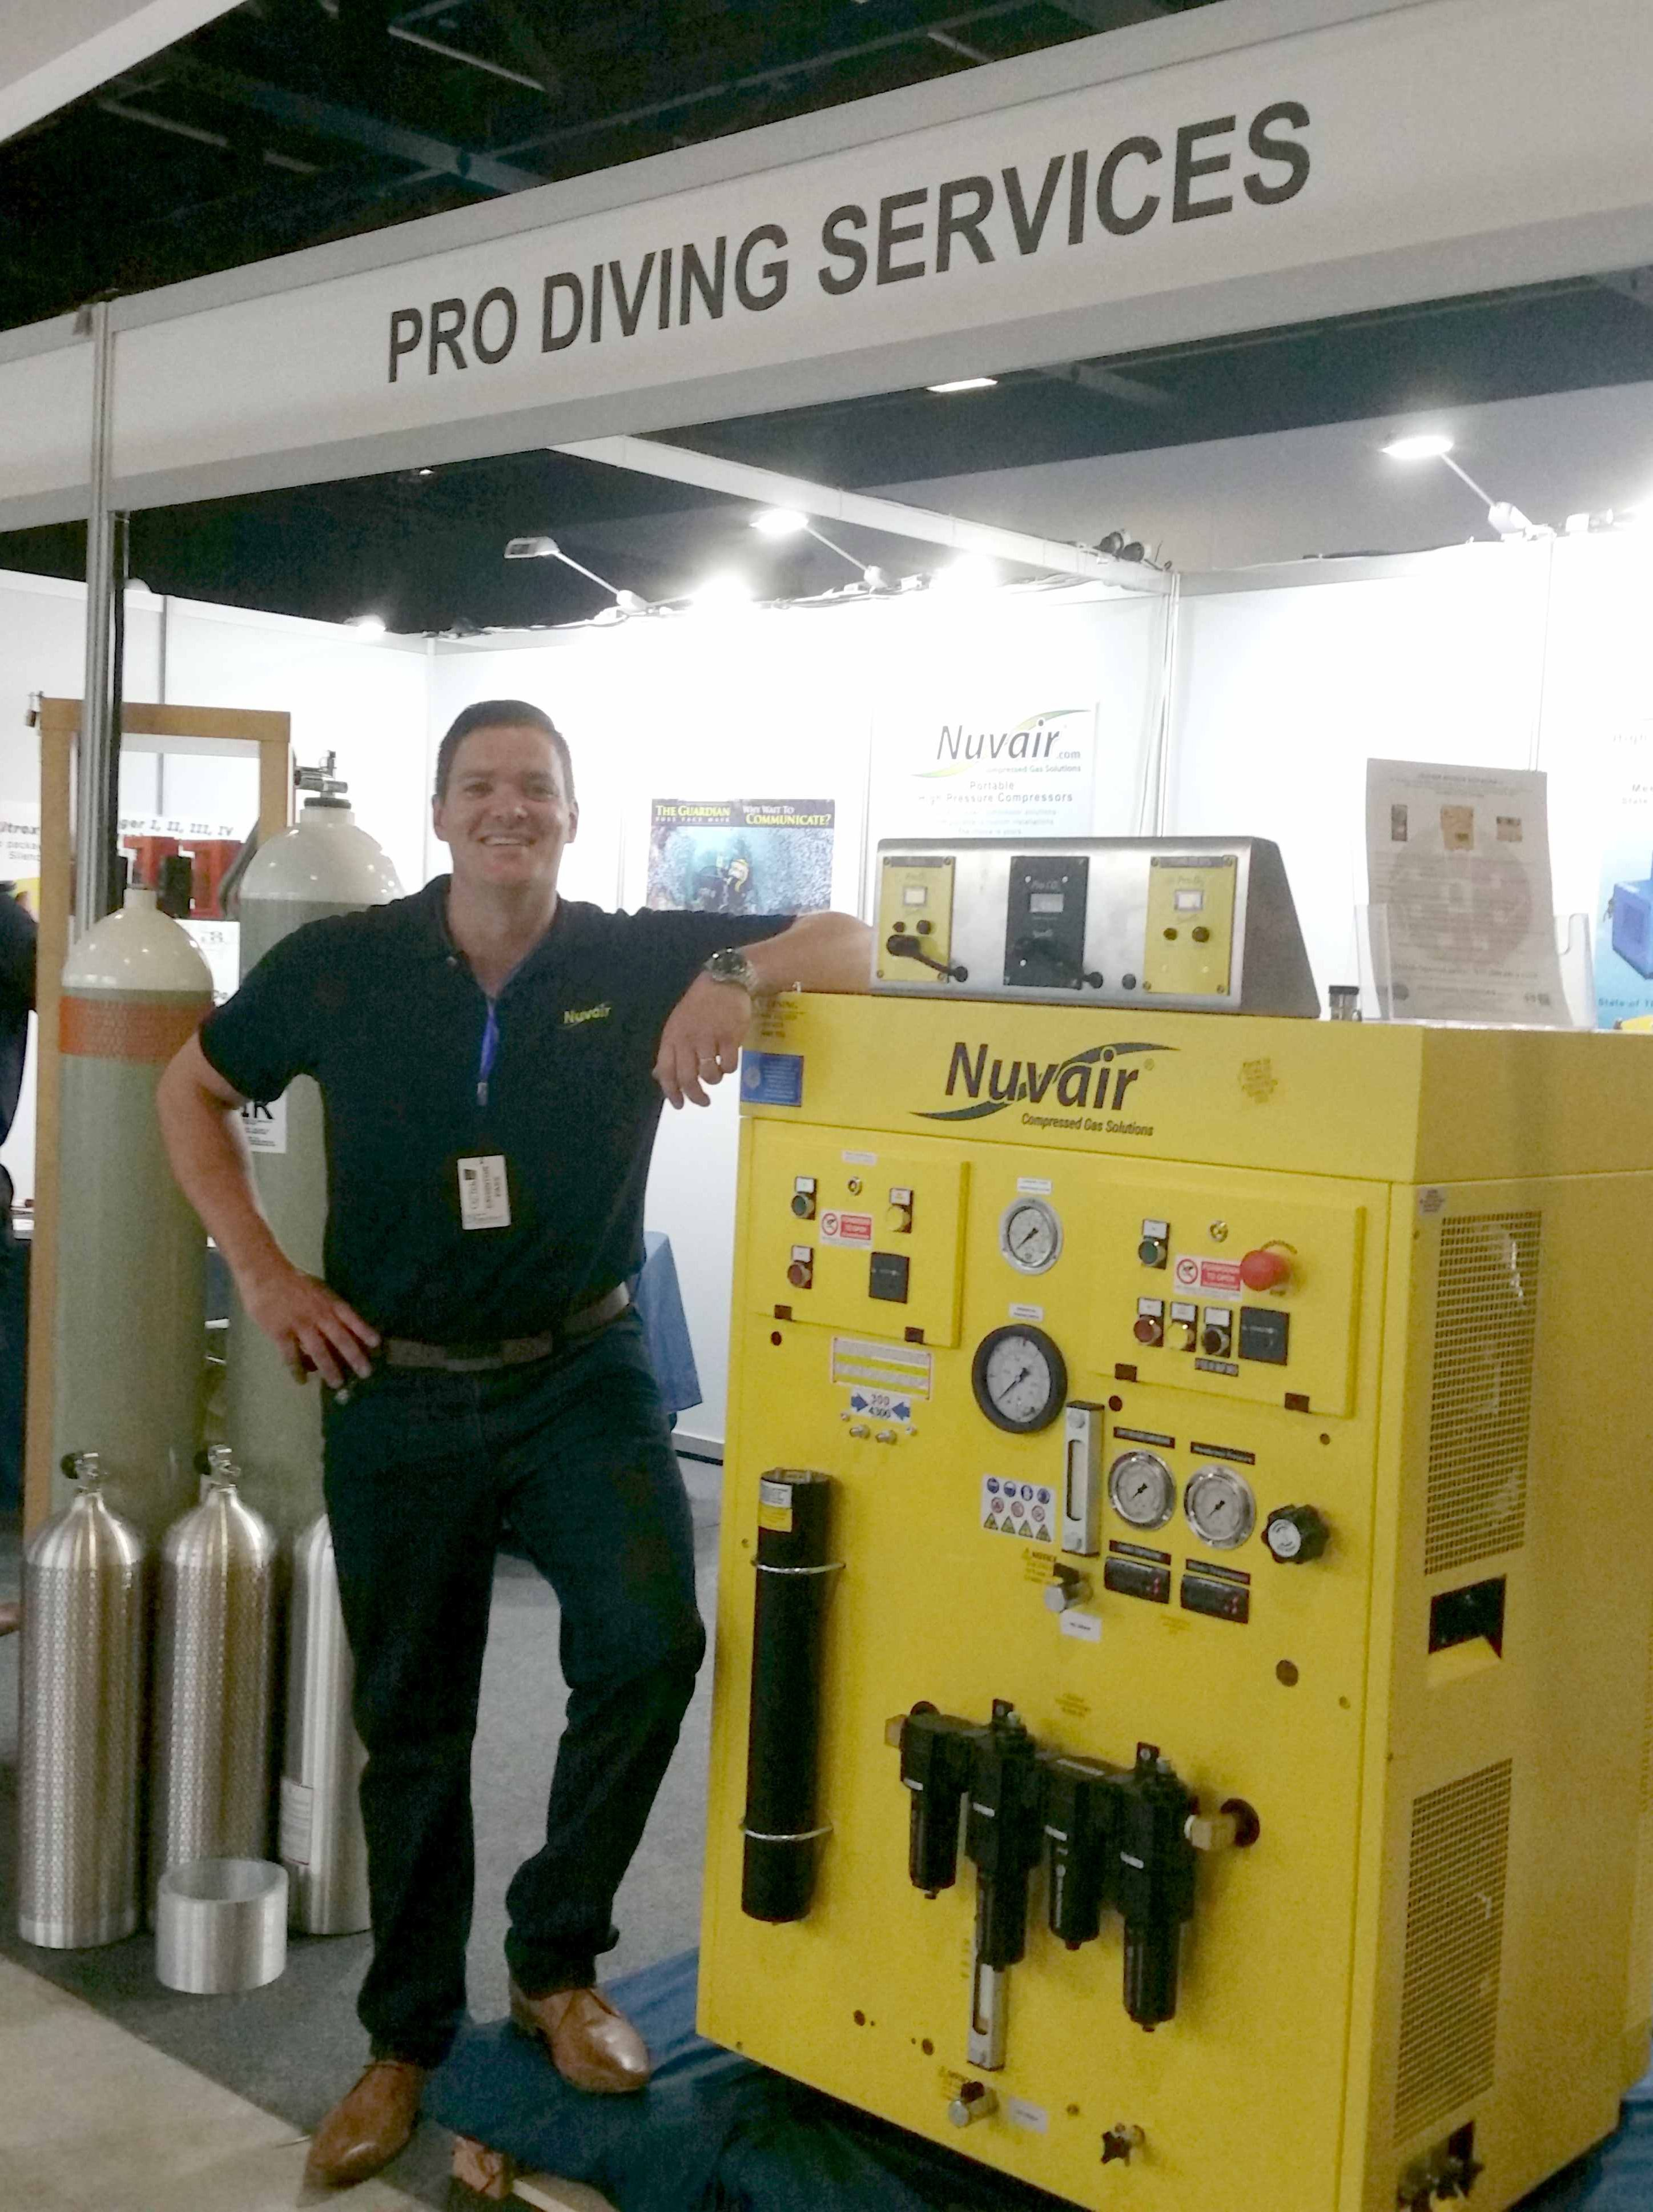 Pin by Pro Diving Services on Air Compressors (With images